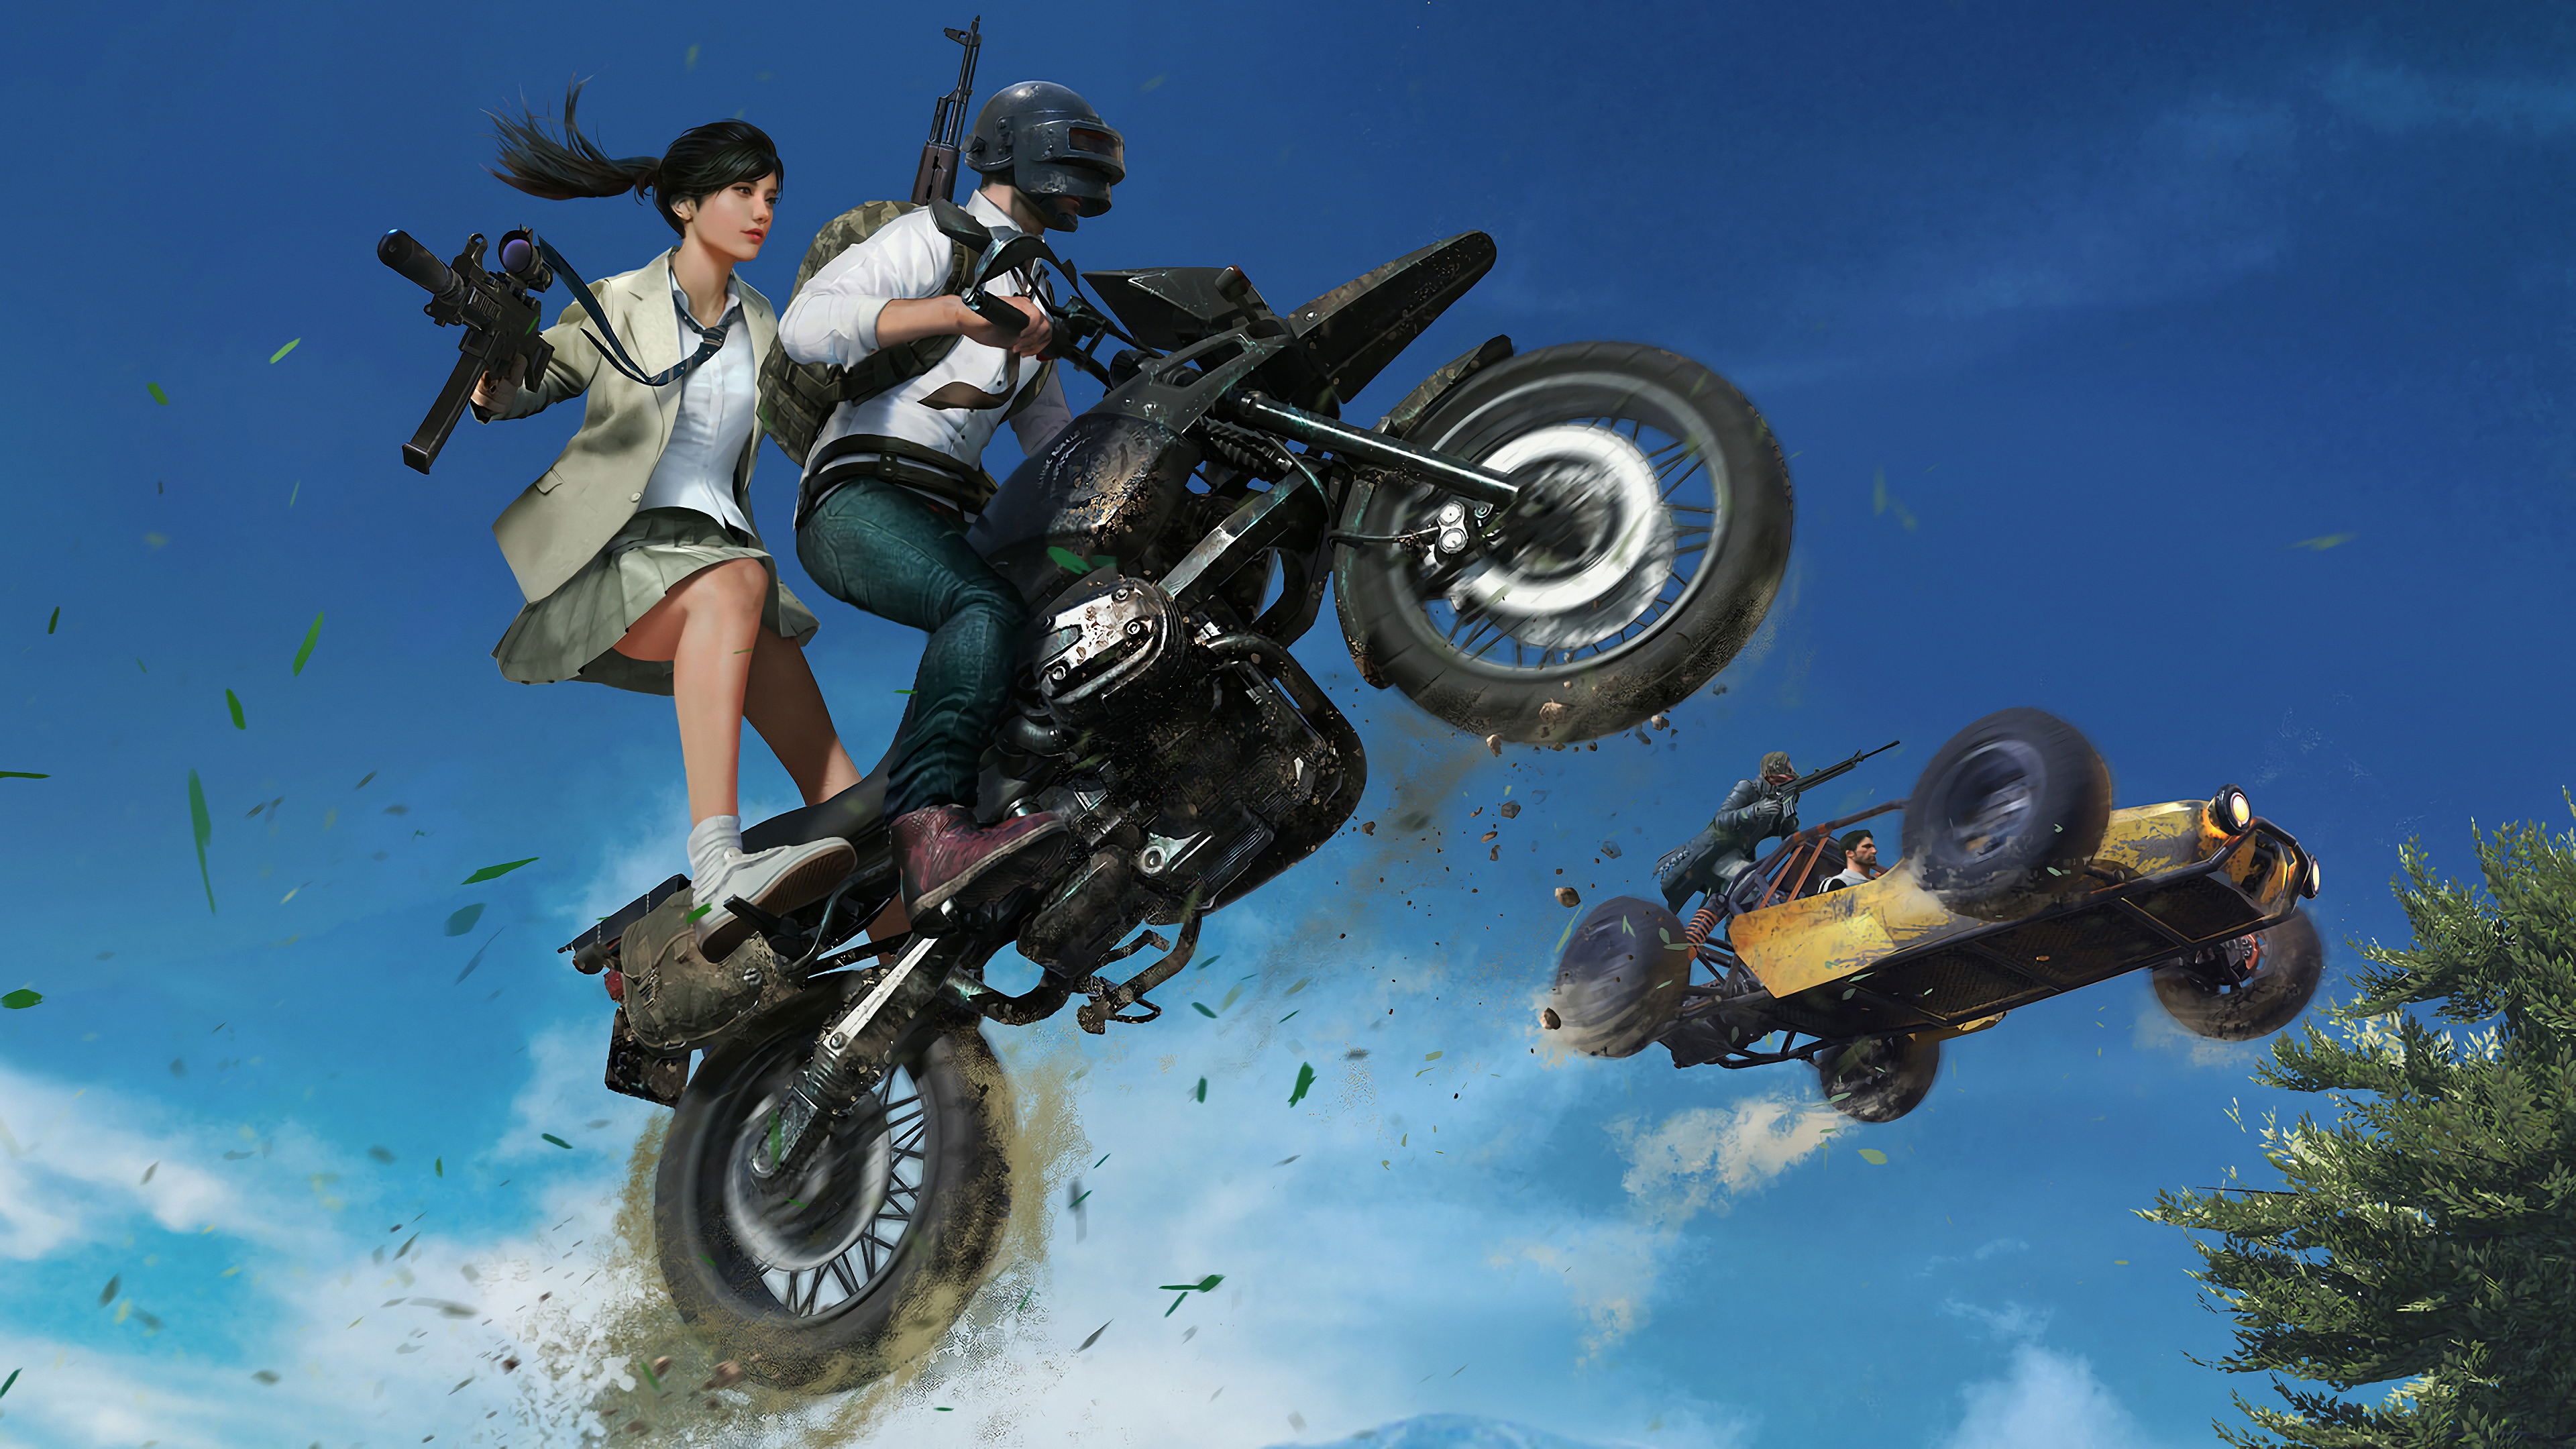 pubg game chase 4k ws 3840x2160 - Player Unknown's Battlegrounds (PUBG) 4K Bike Girl - Pubg wallpaper phone, pubg wallpaper iphone, pubg wallpaper 1920x1080 hd, pubg hd wallpapers, pubg 4k wallpapers, Player Unknown's Battlegrounds 4k wallpapers